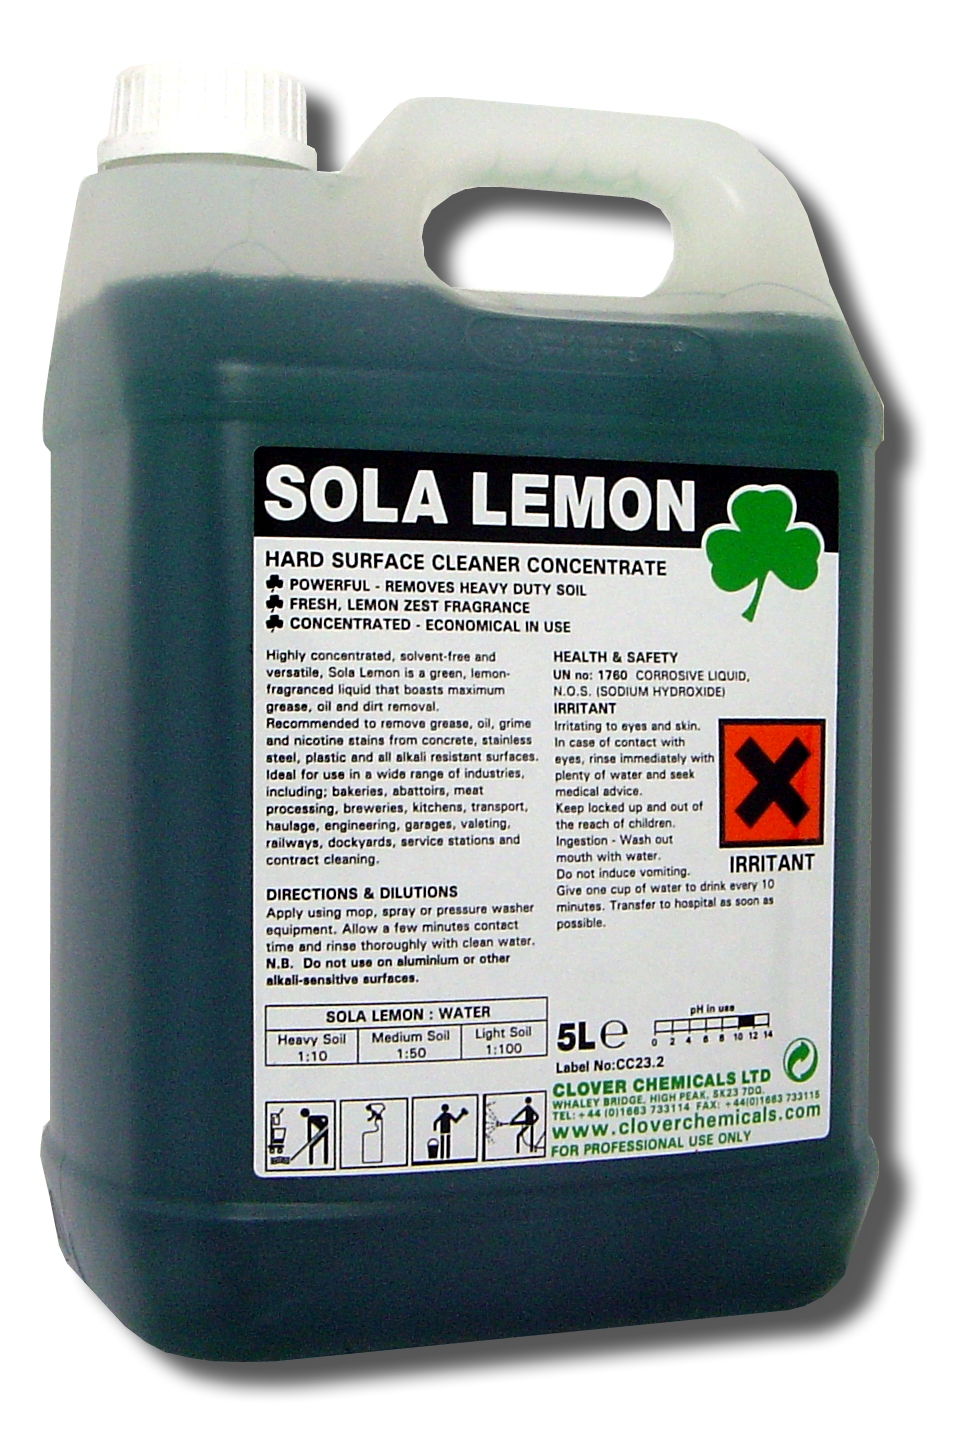 Sola lemon reinigingsconcentraat